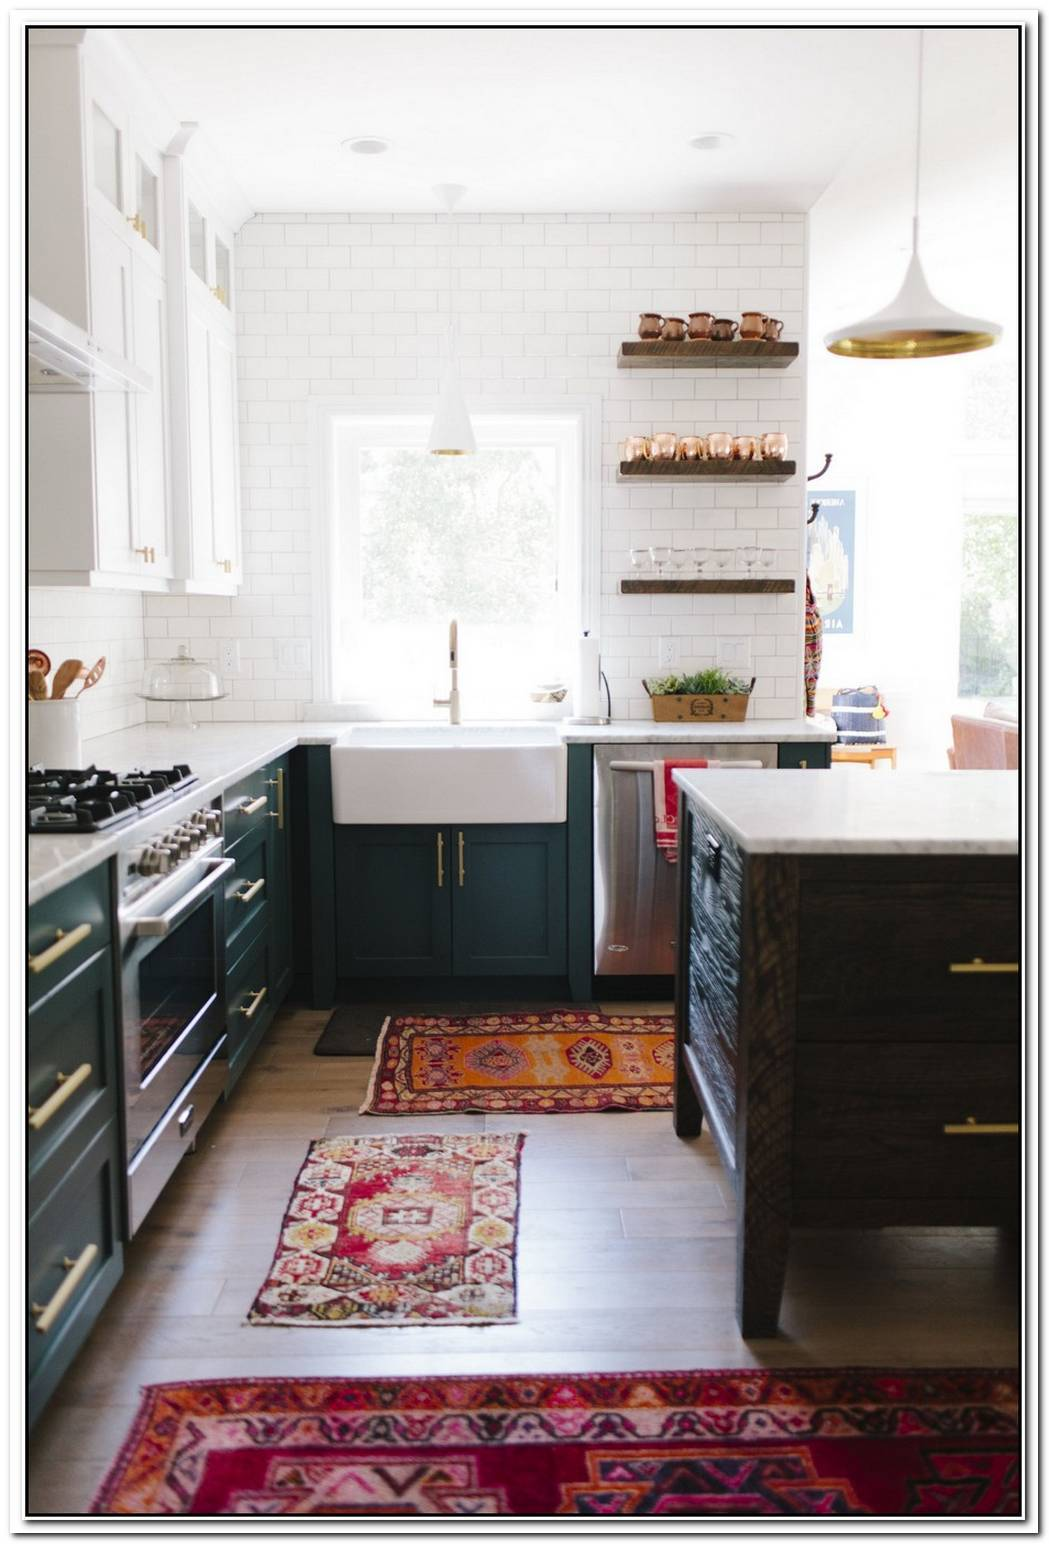 13 Envy Inducing Green Cabinets That Will Make Your Houseguests Jealous